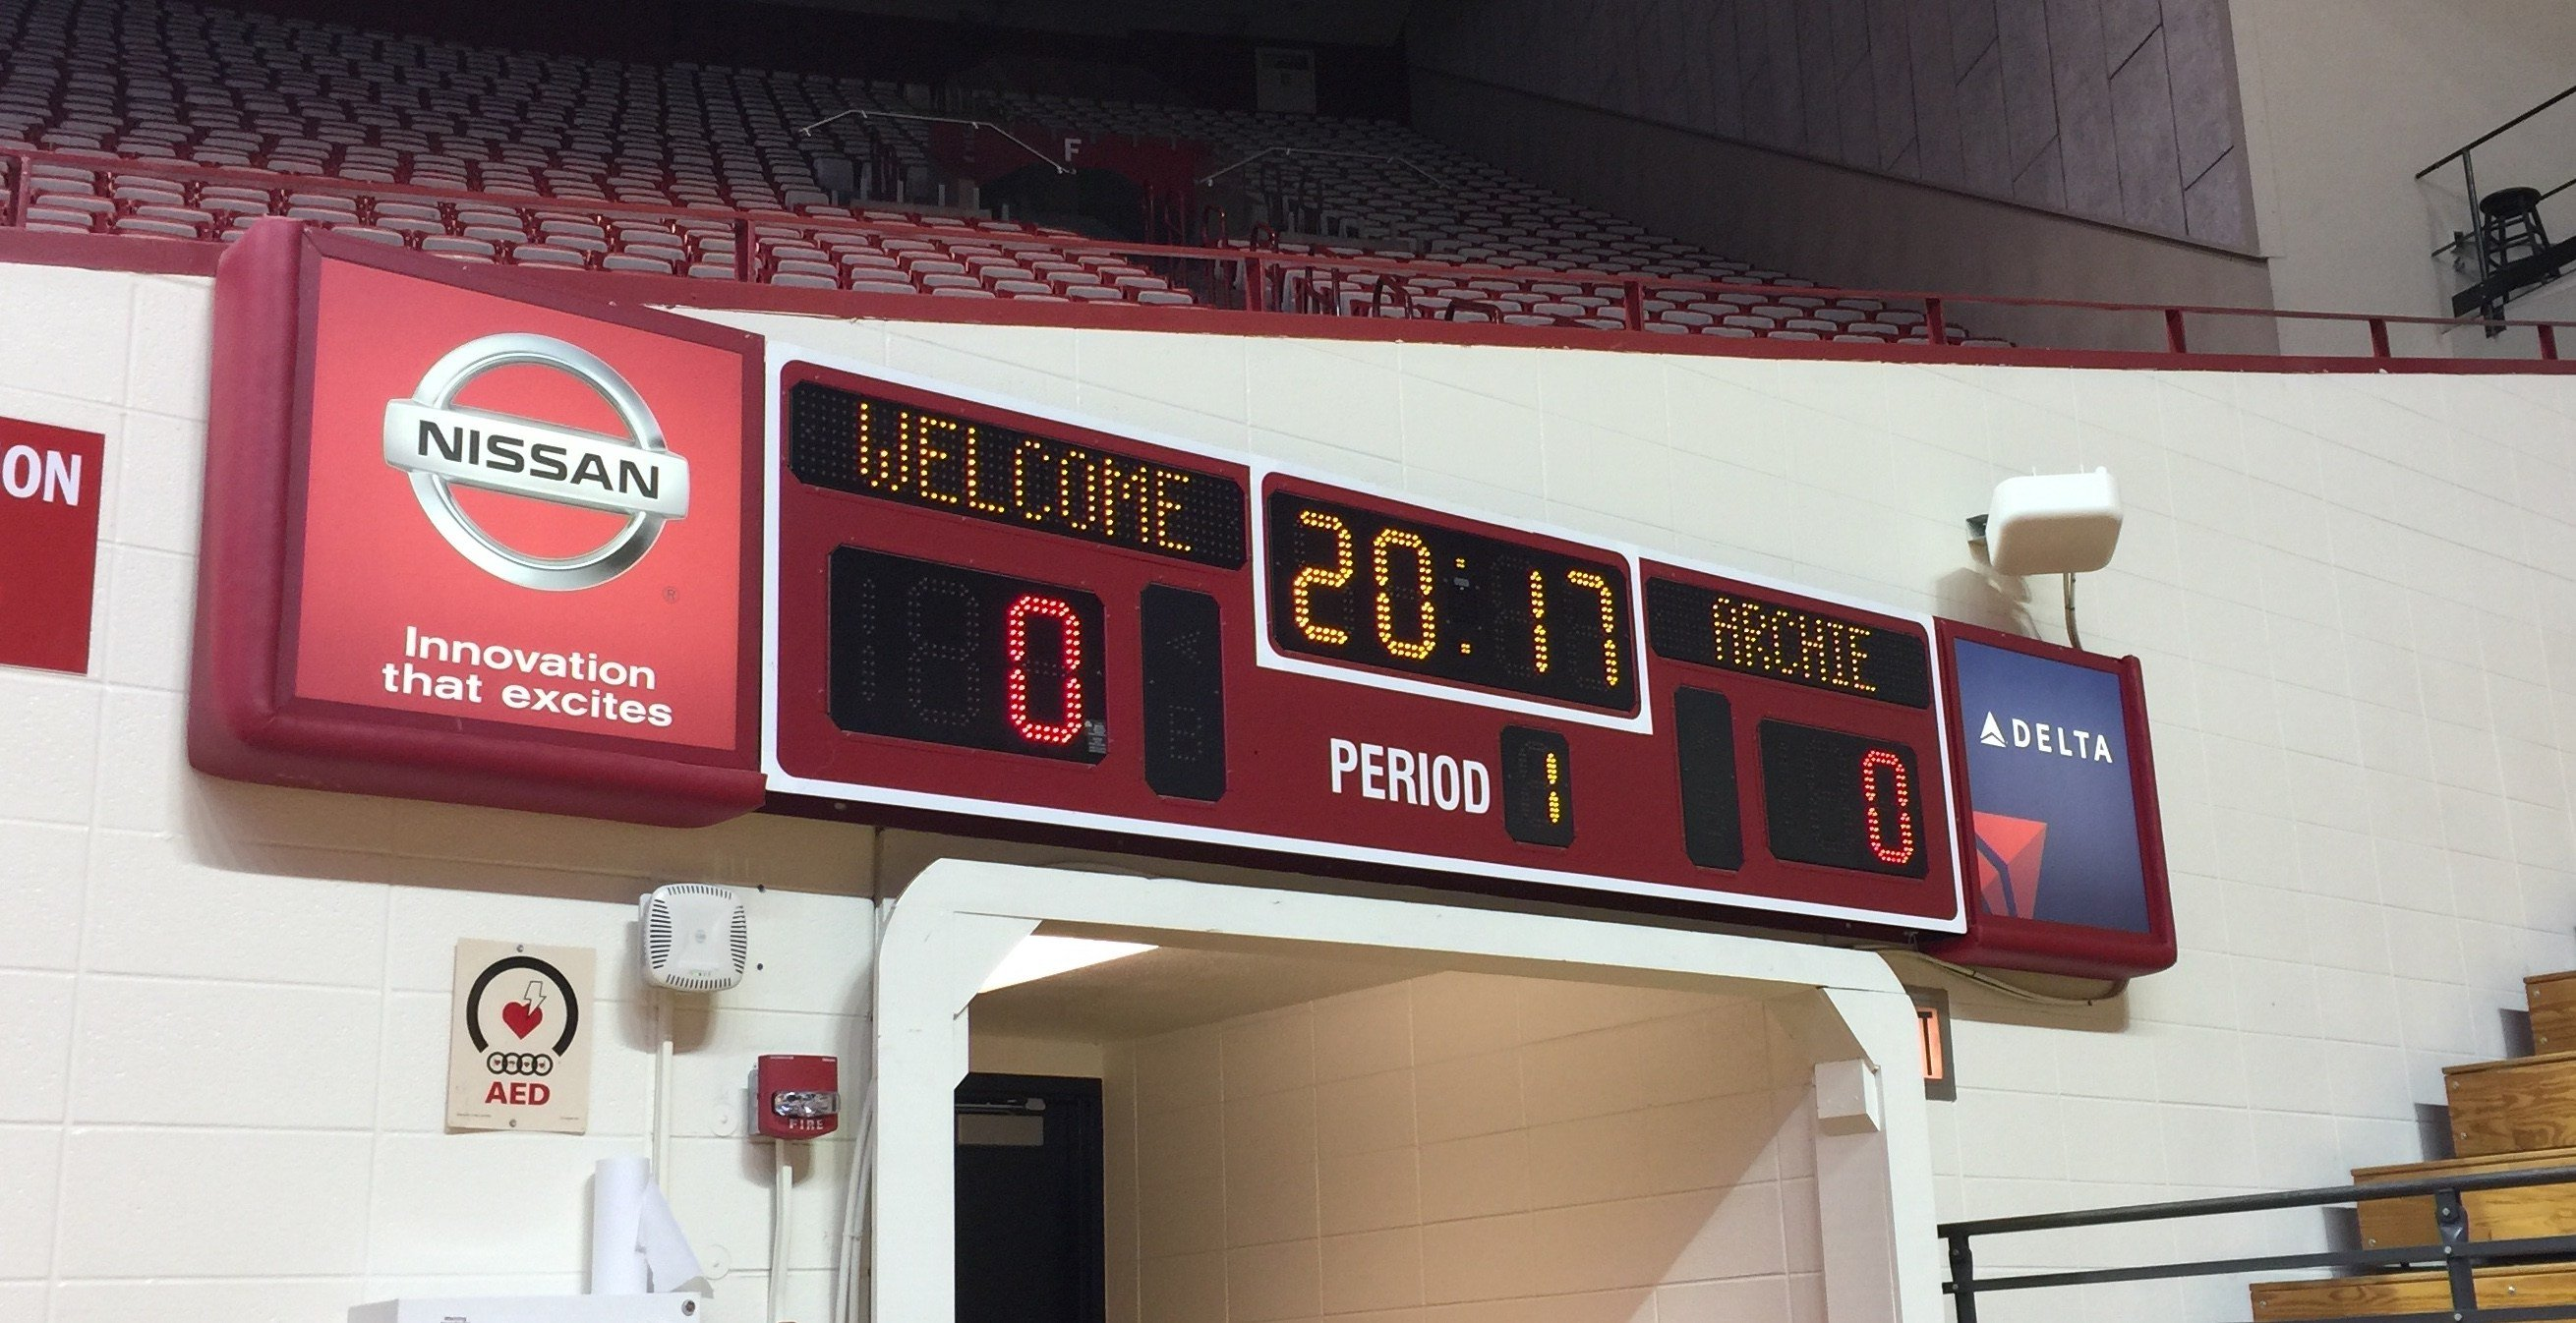 Scoreboards in Assembly Hall welcome new Indiana coach Archie Miller (WDRB photo by Eric Crawford)